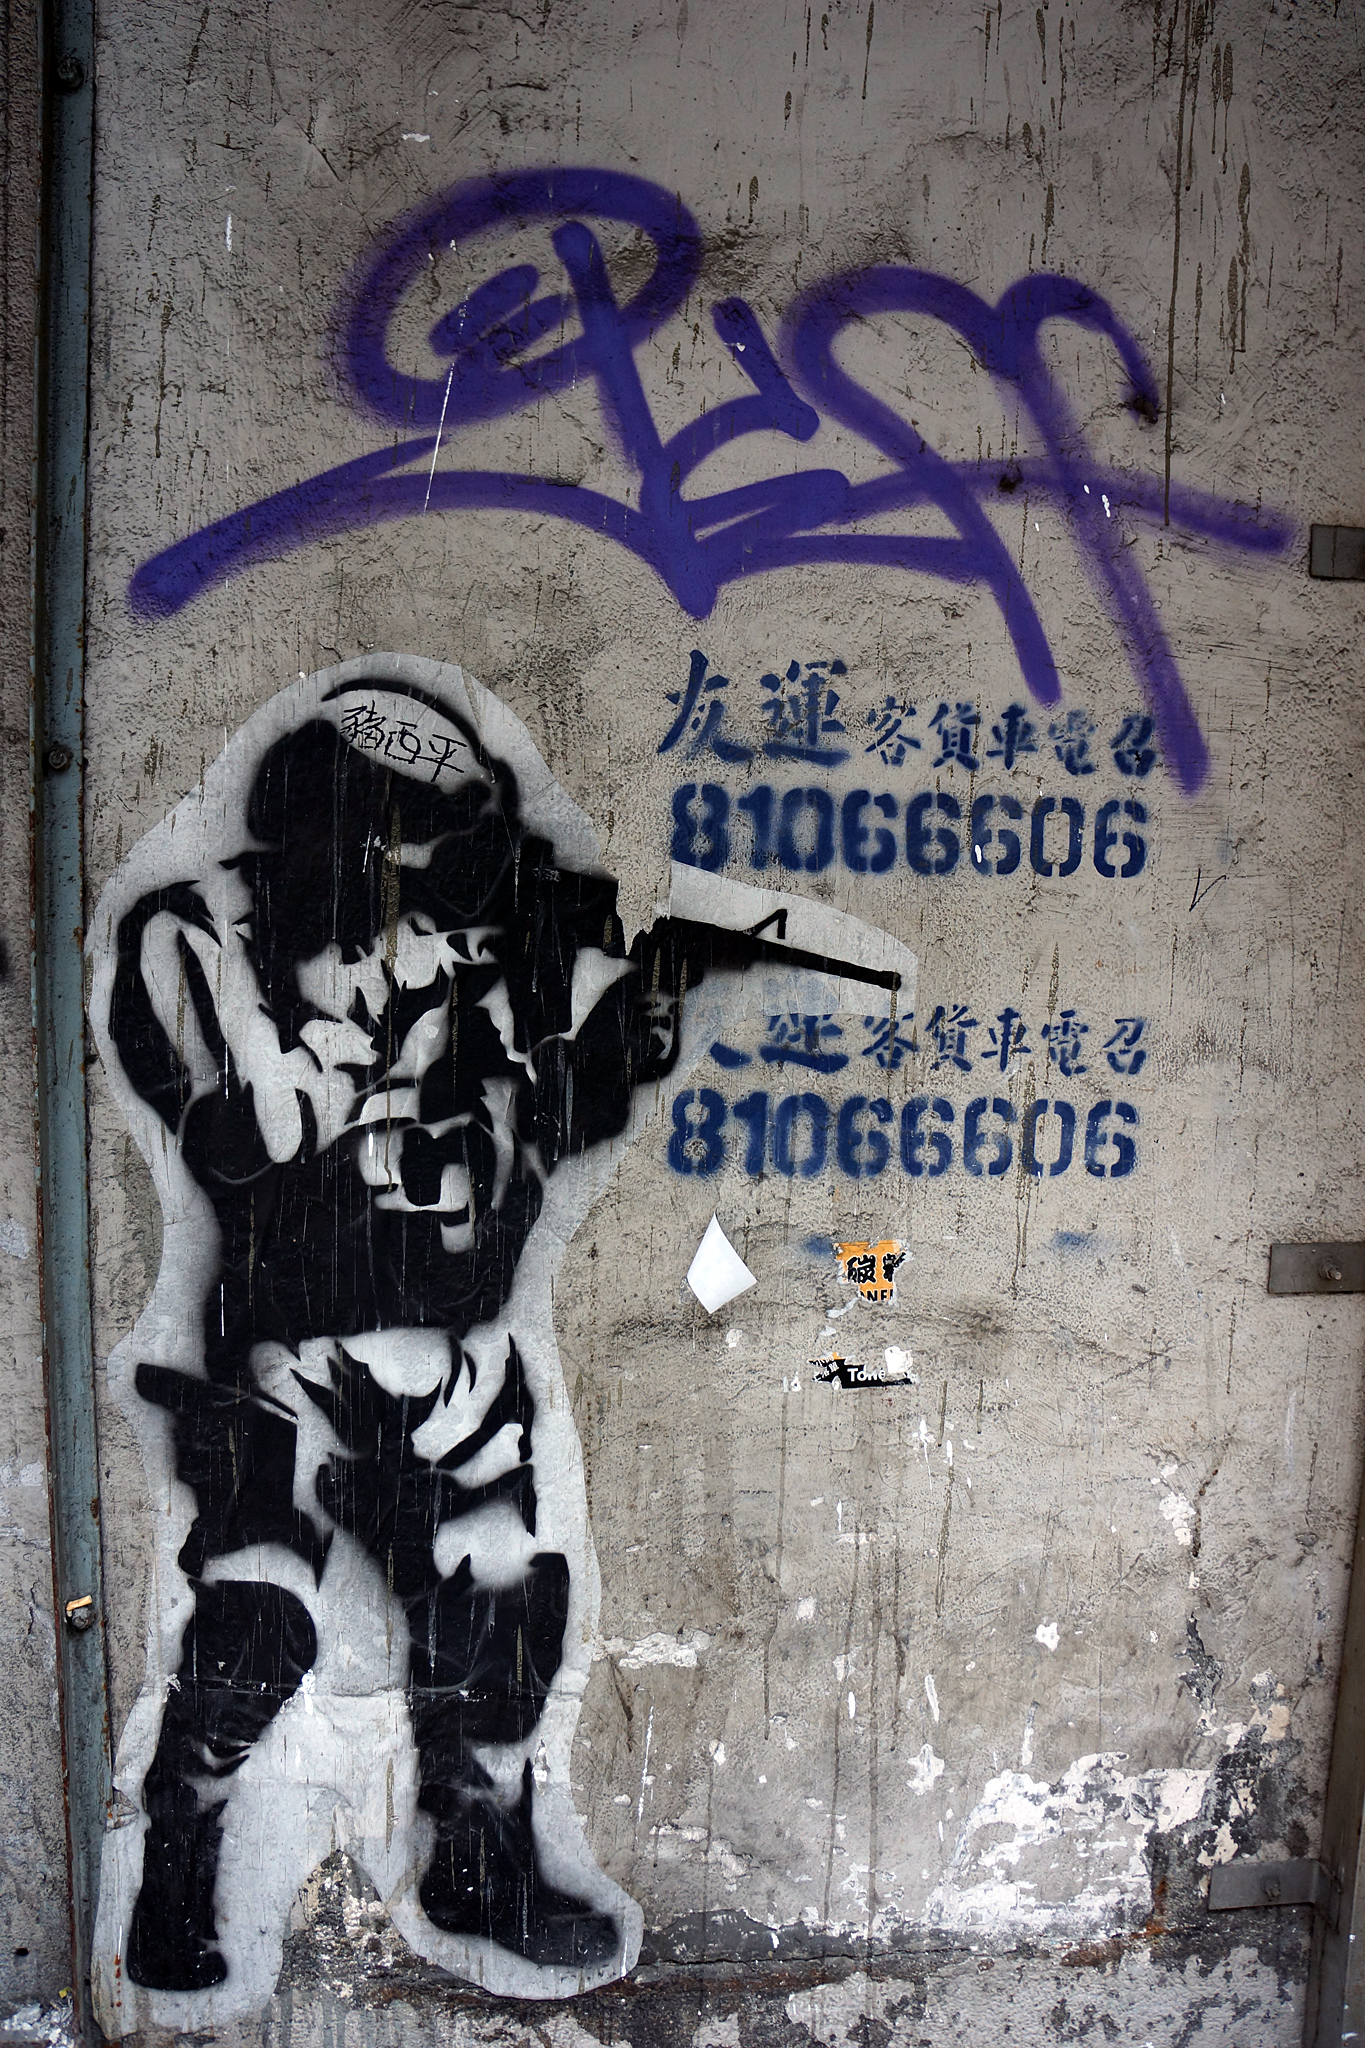 Photo: Hong Kong Graffiti and Street Art Photo by longzijun Location: Ngau Tau Kok / Kwun Tong Category: Paste-up, tag Camera: Sony NEX-7